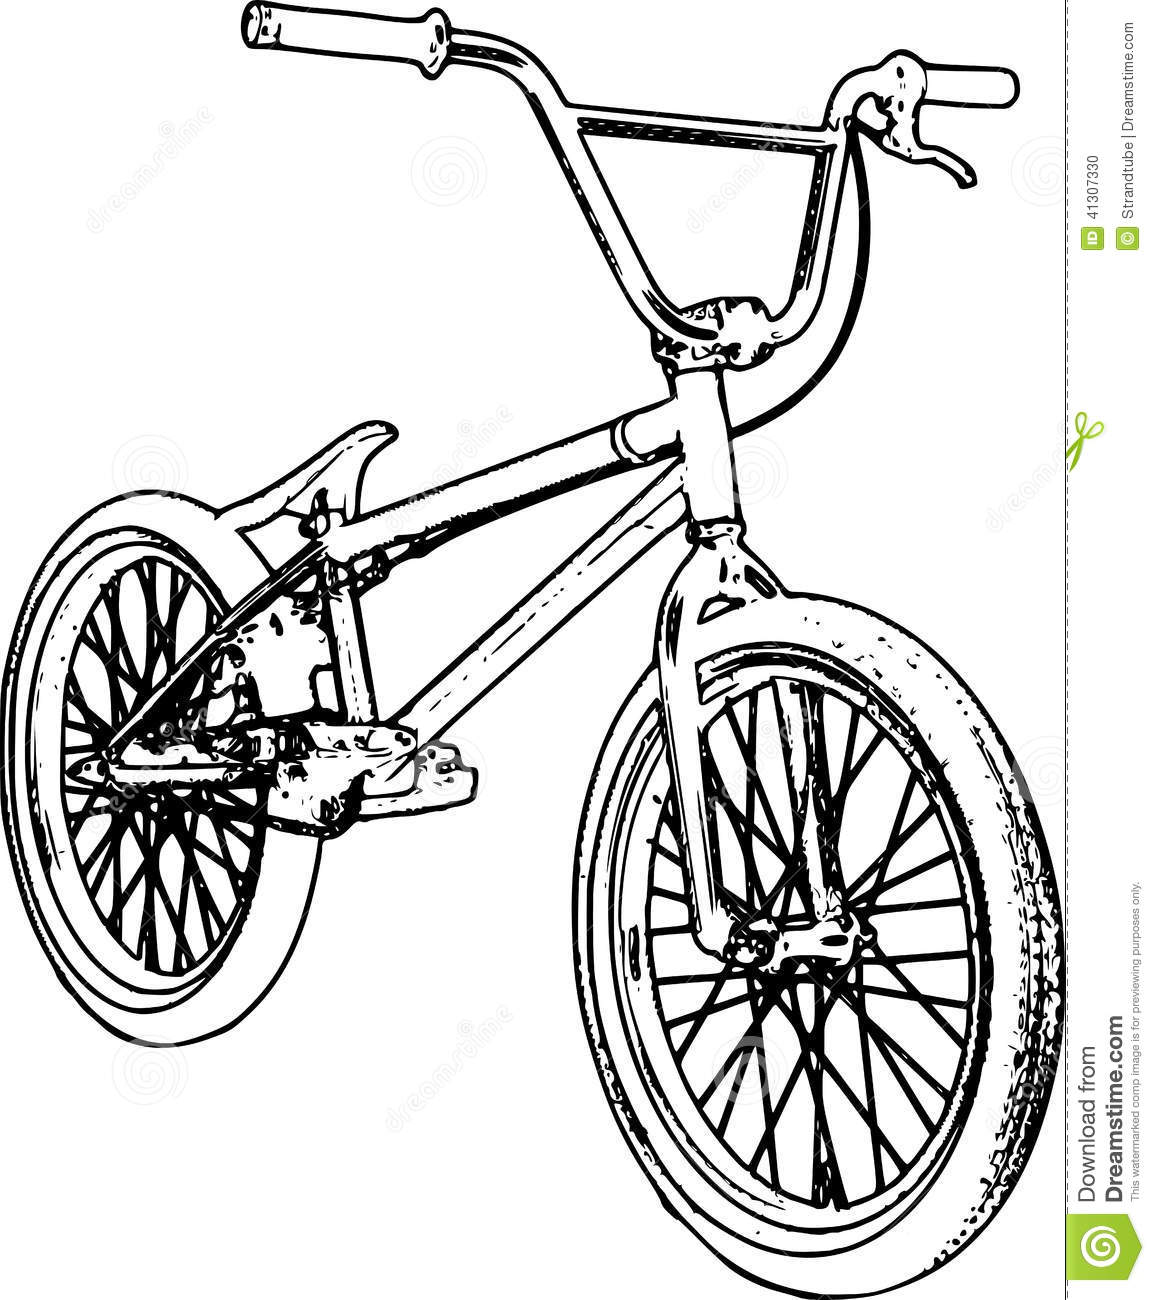 Line Art Illustration : Retro bmx sketch stock illustration image of symbol